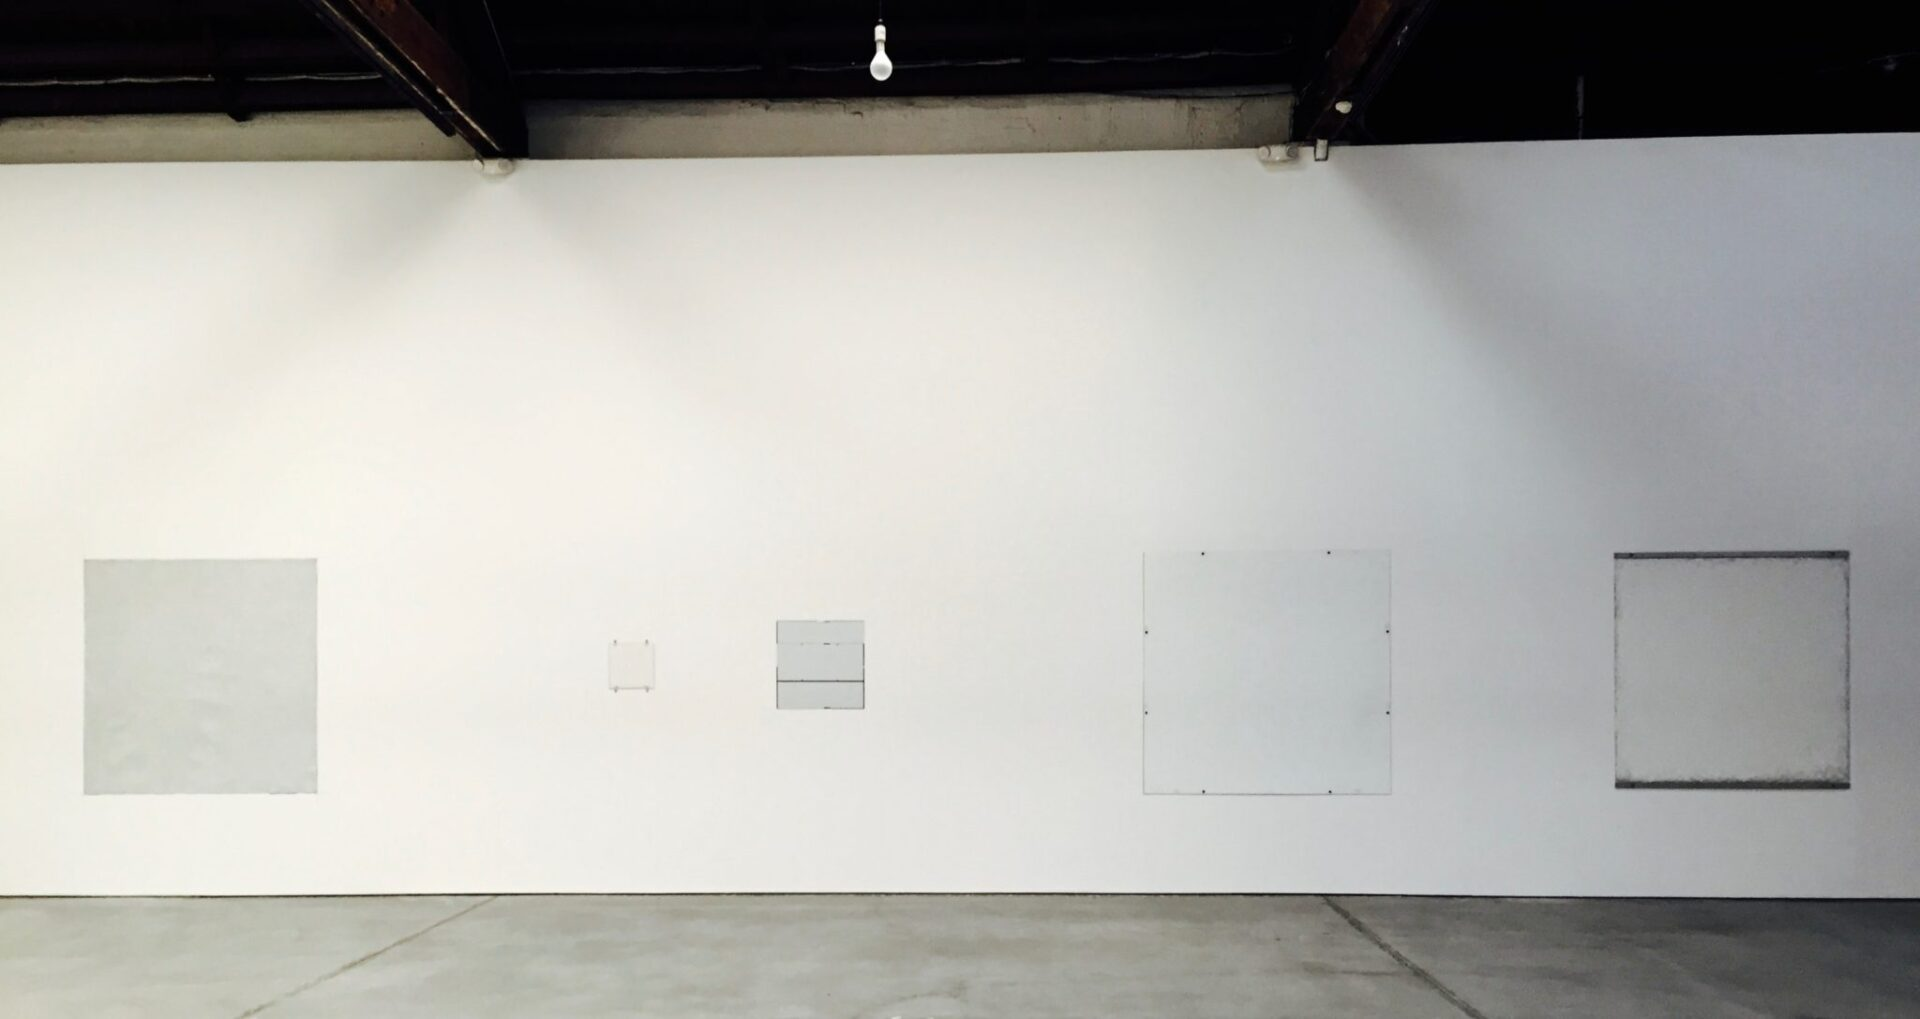 Robert Ryman. Gallery 2, installation view of the east wall. This selection of works ranging from 1968 to 1985 demonstrates Ryman's interest in industrial materials as supports for his paintings, including Plexigas and aluminum.